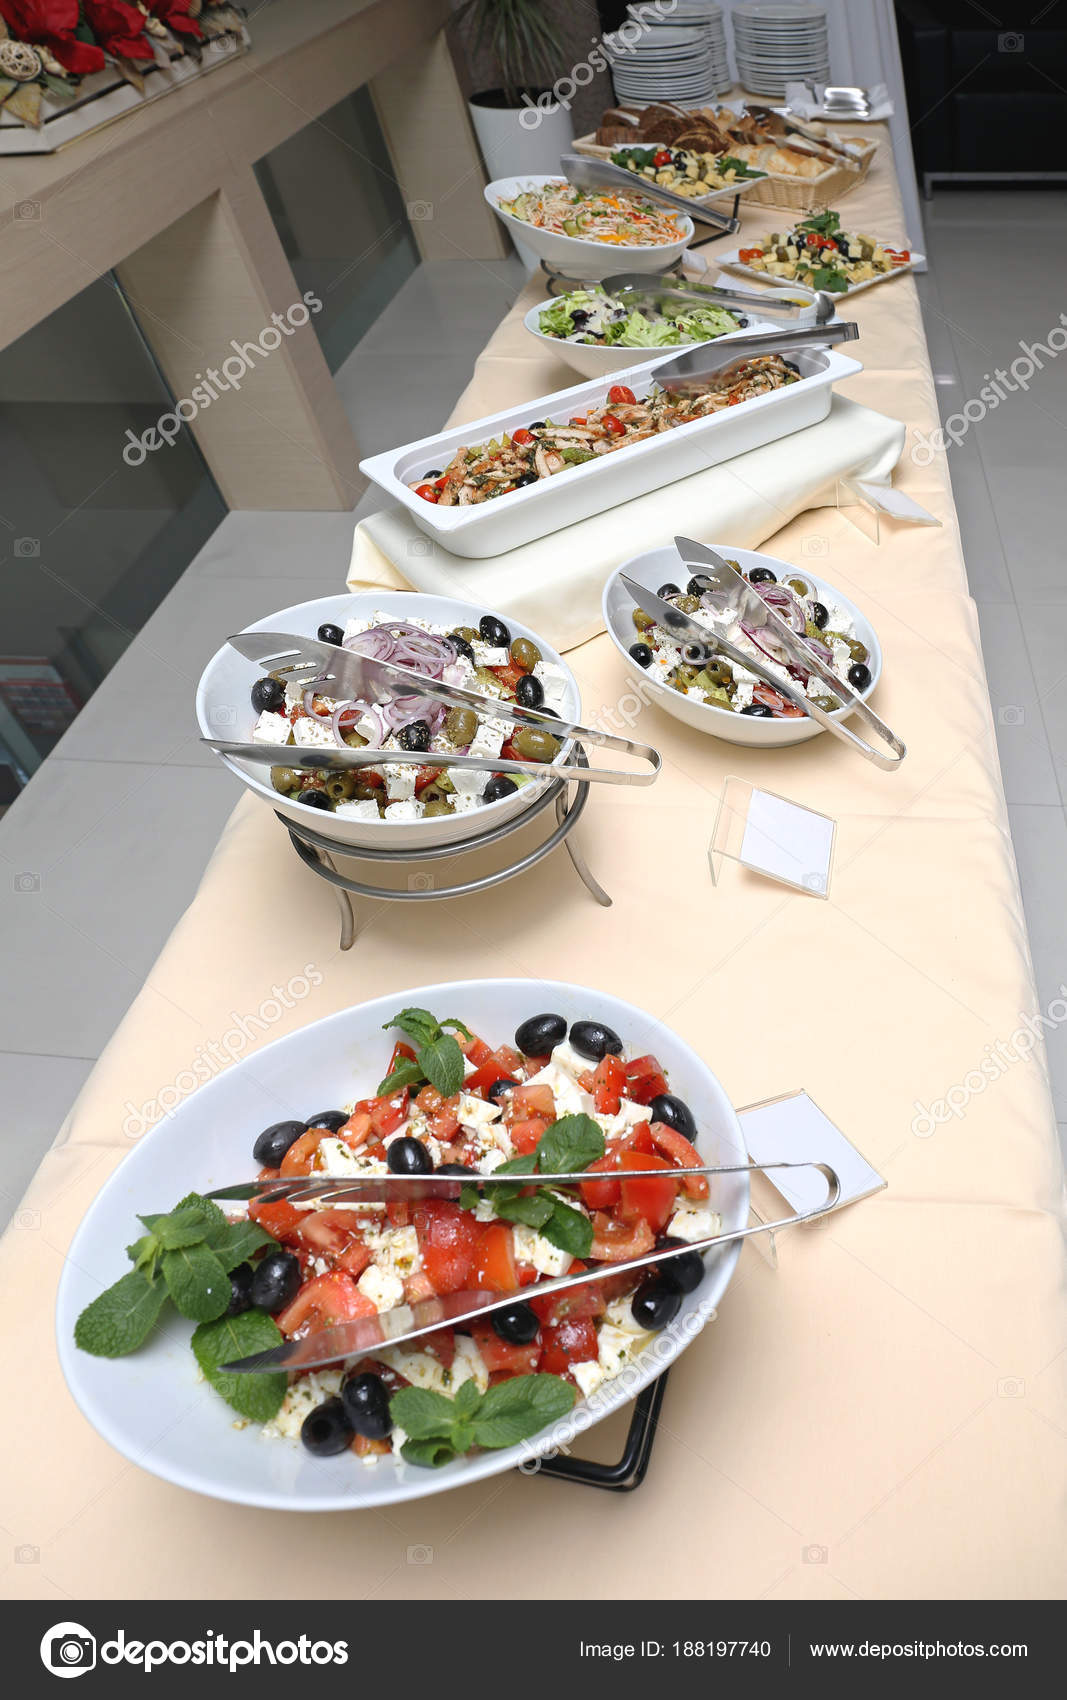 Picture of: Long Buffet Table Stock Photo C Baloncici 188197740